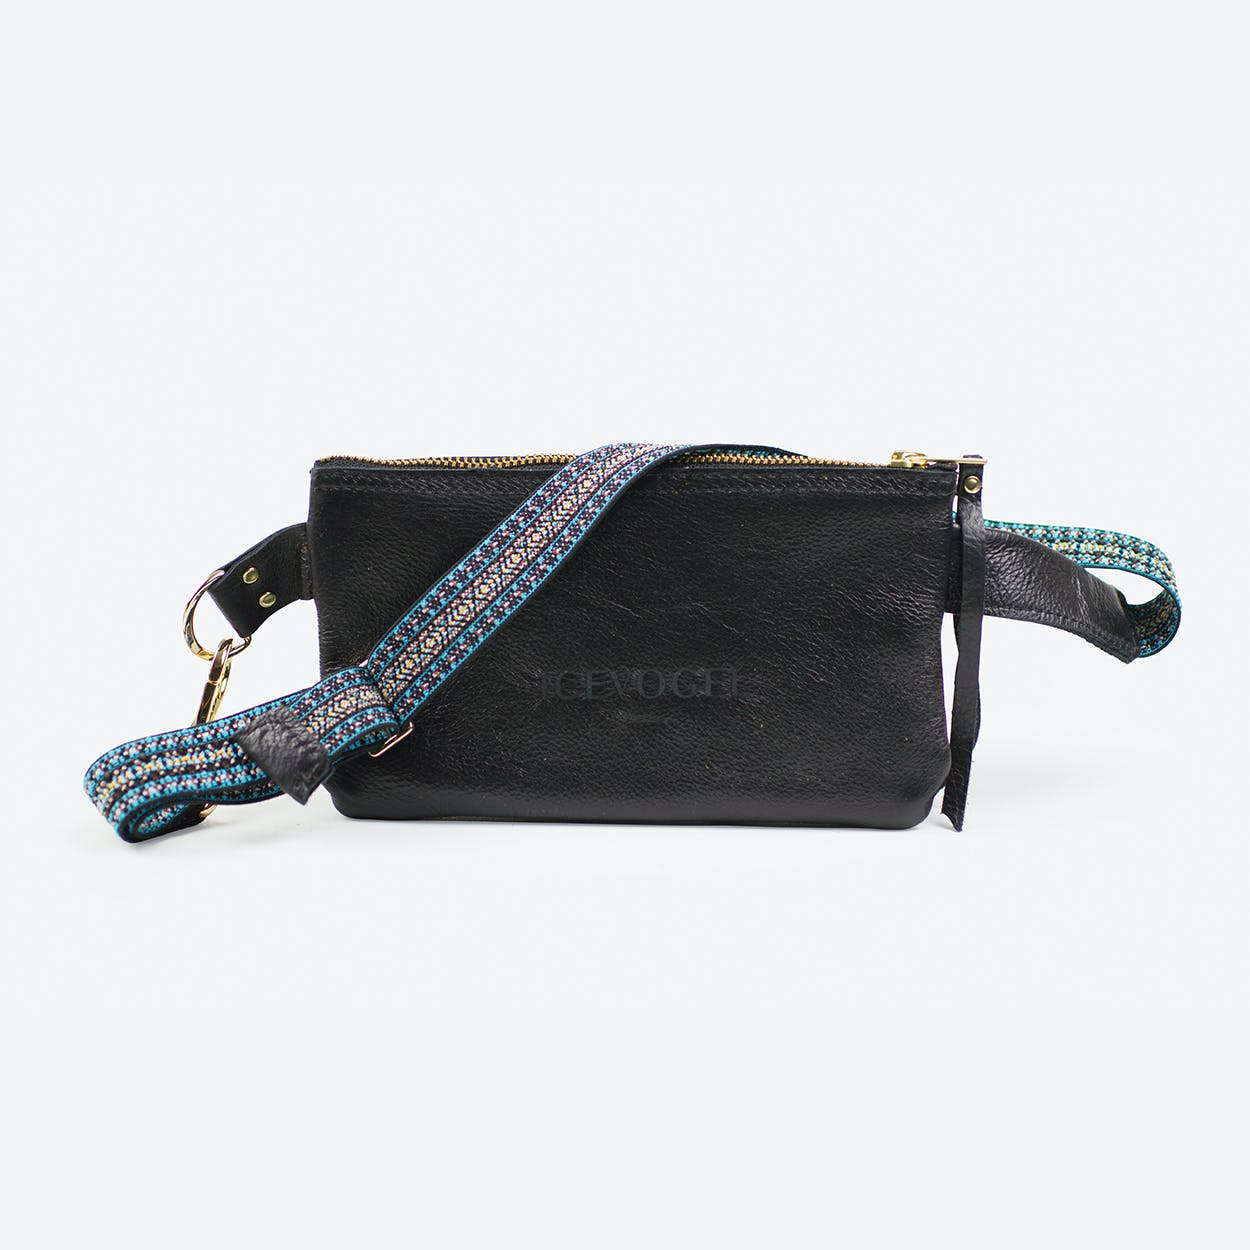 Hipbag Saatkrähe 2 in Black Cow Leather and Bohemian Strap